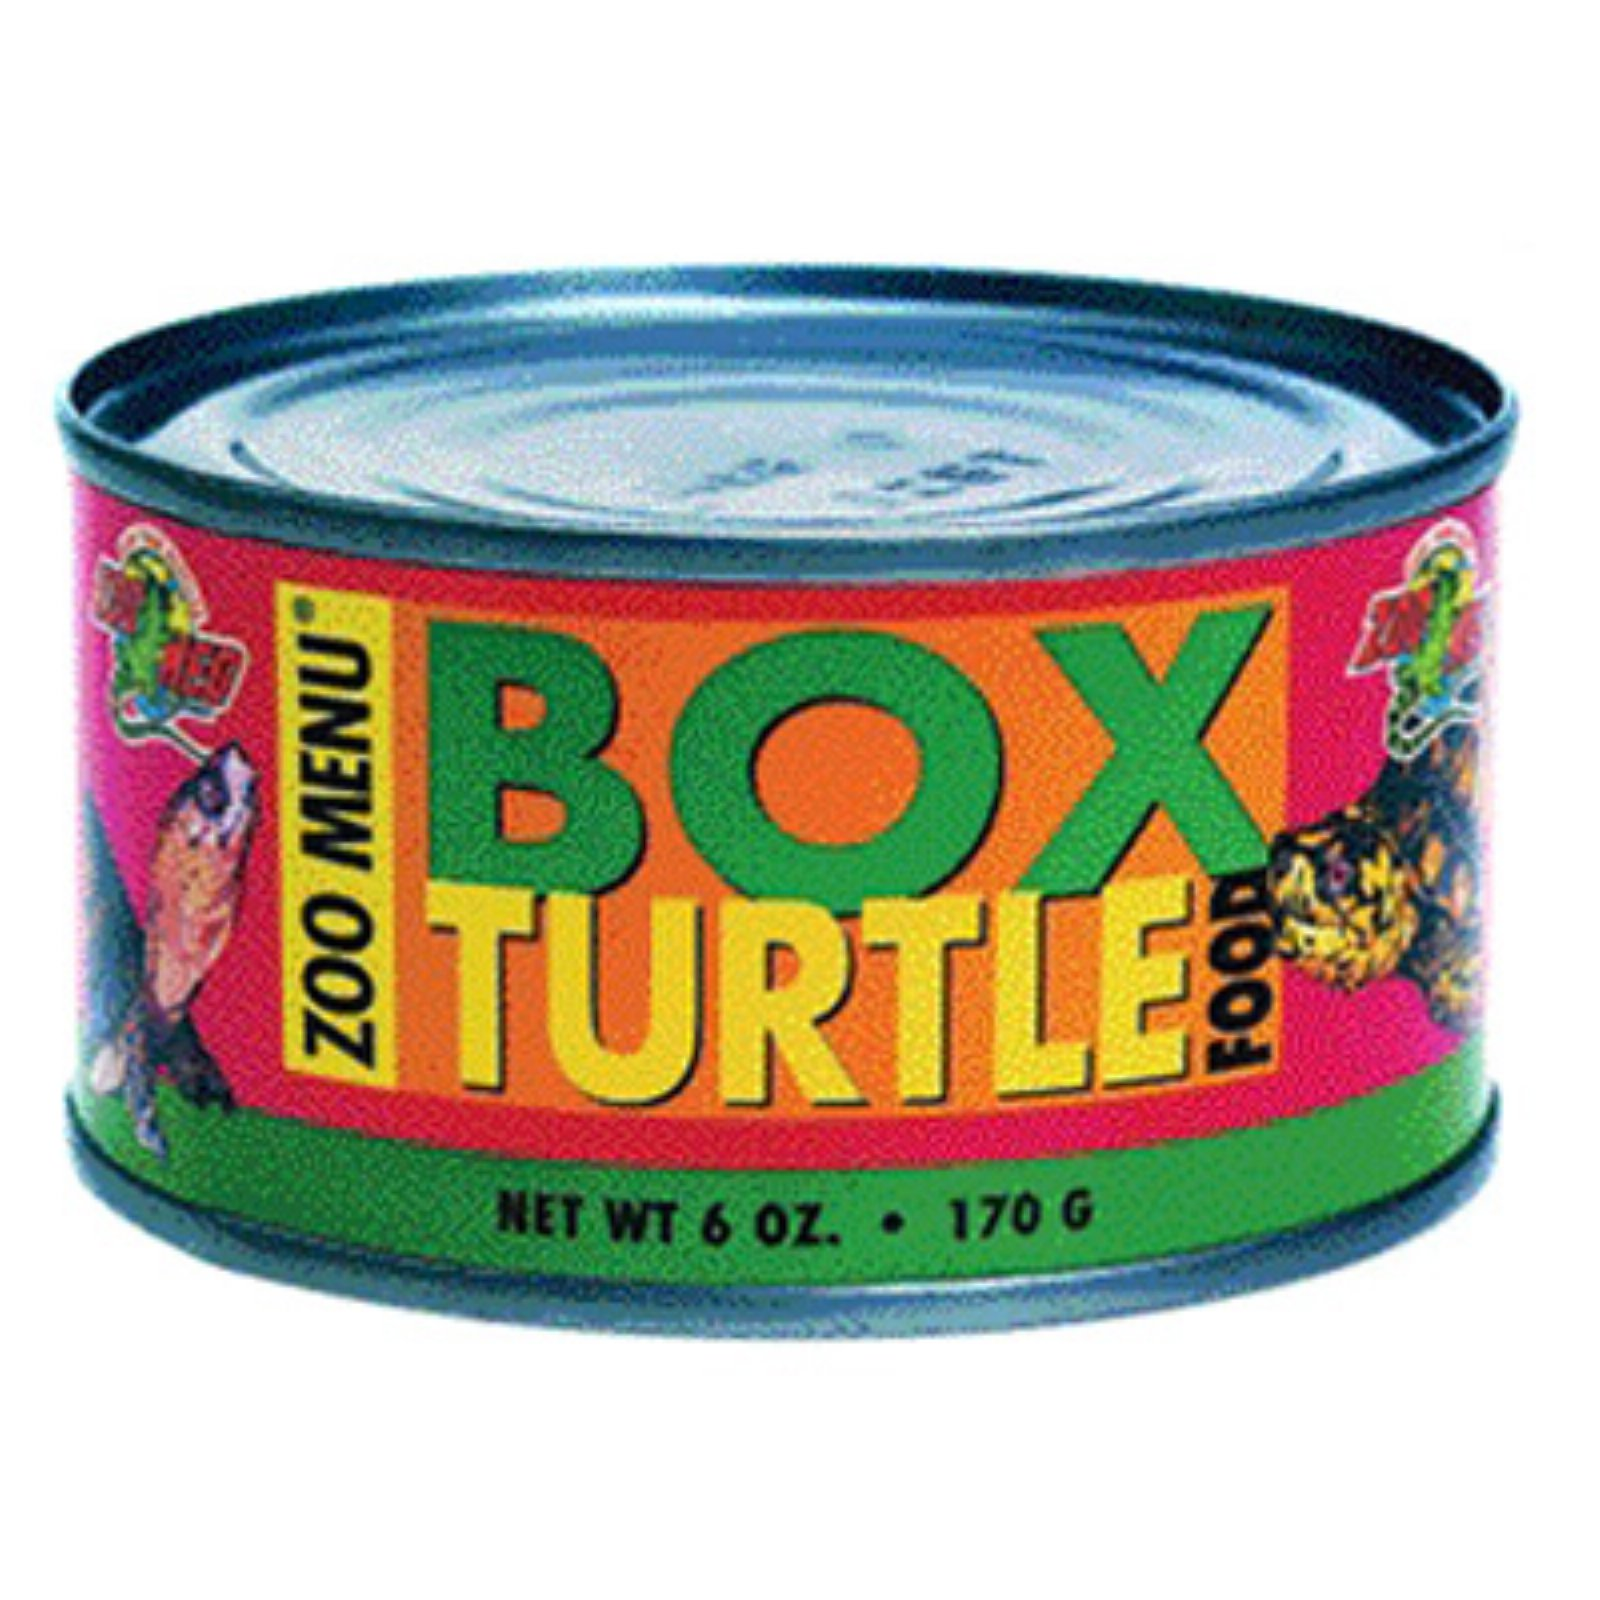 Zoo Med Box Turtle Food Canned Food, 6 oz by Generic